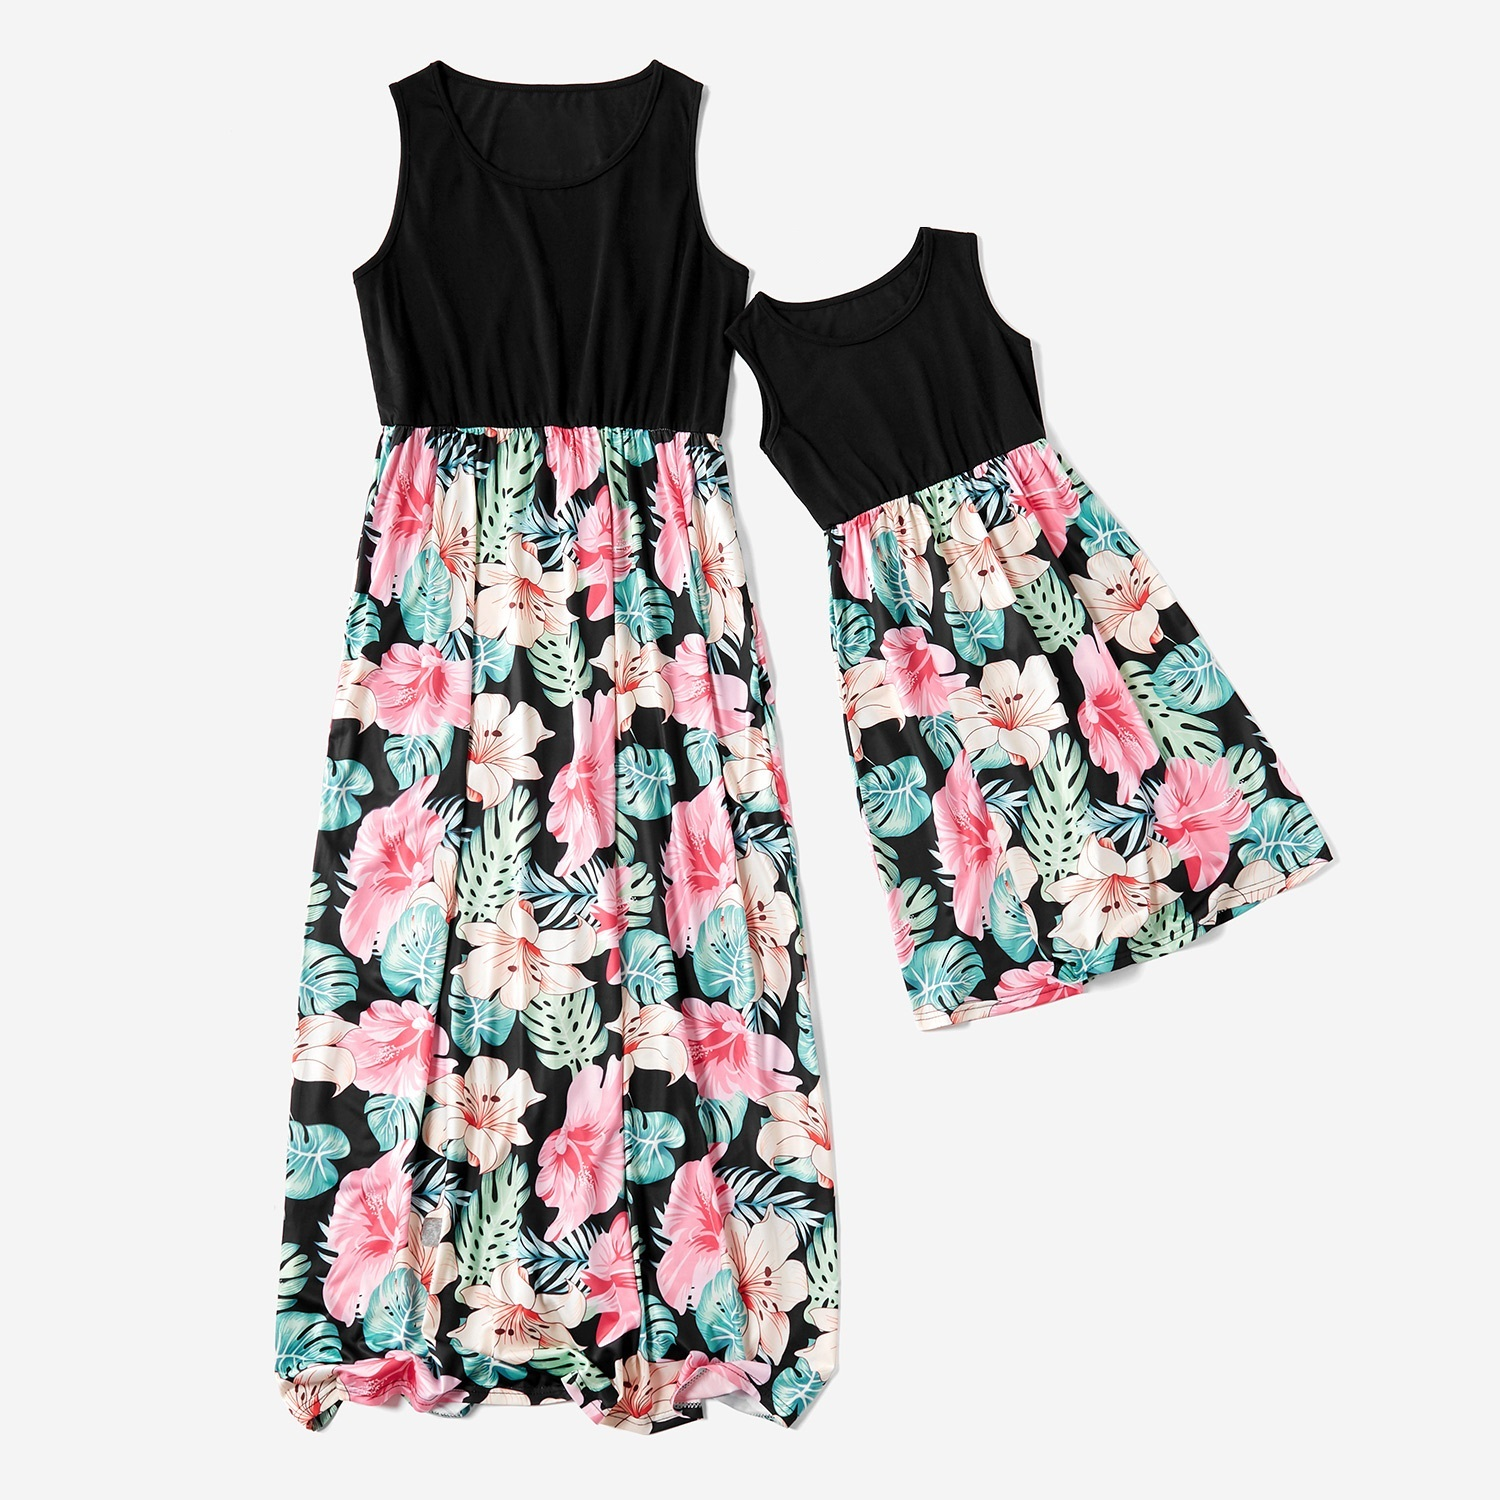 highwaist mother daughter vest dresses flower mommy and me clothes family matching outfits mom mum & baby women girls dress look